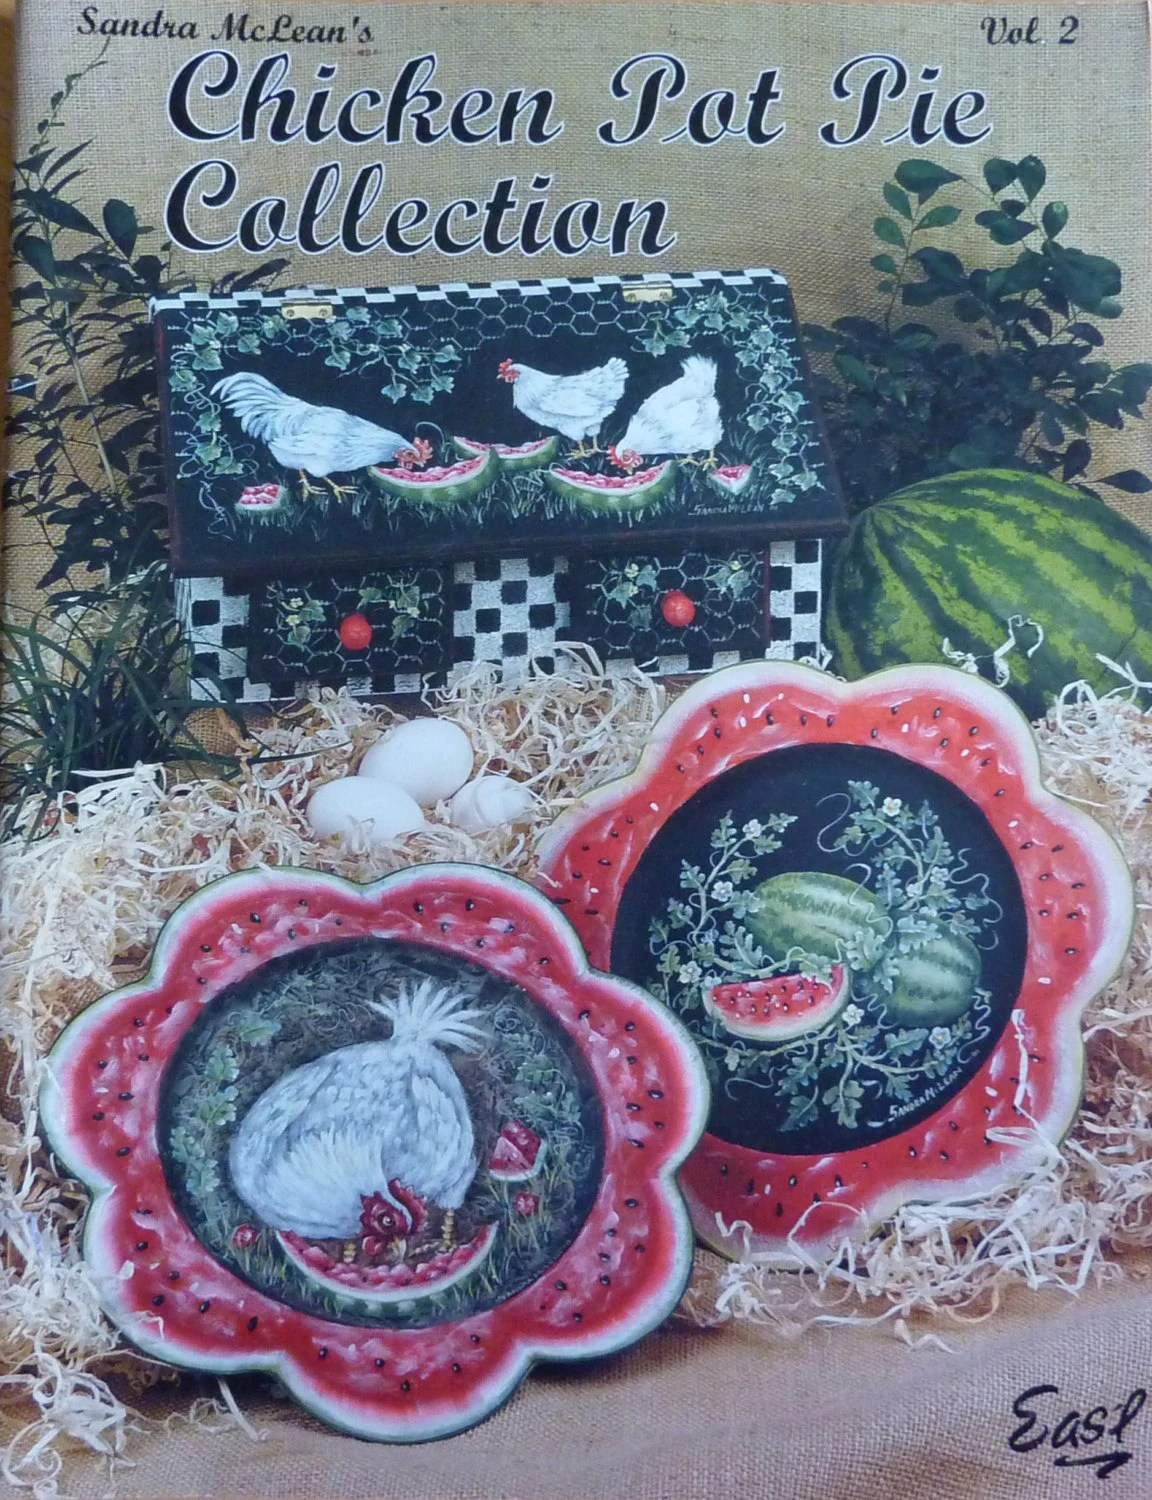 Chicken Pot Pie Collection Vol 2 By Sandra Mclean Tole